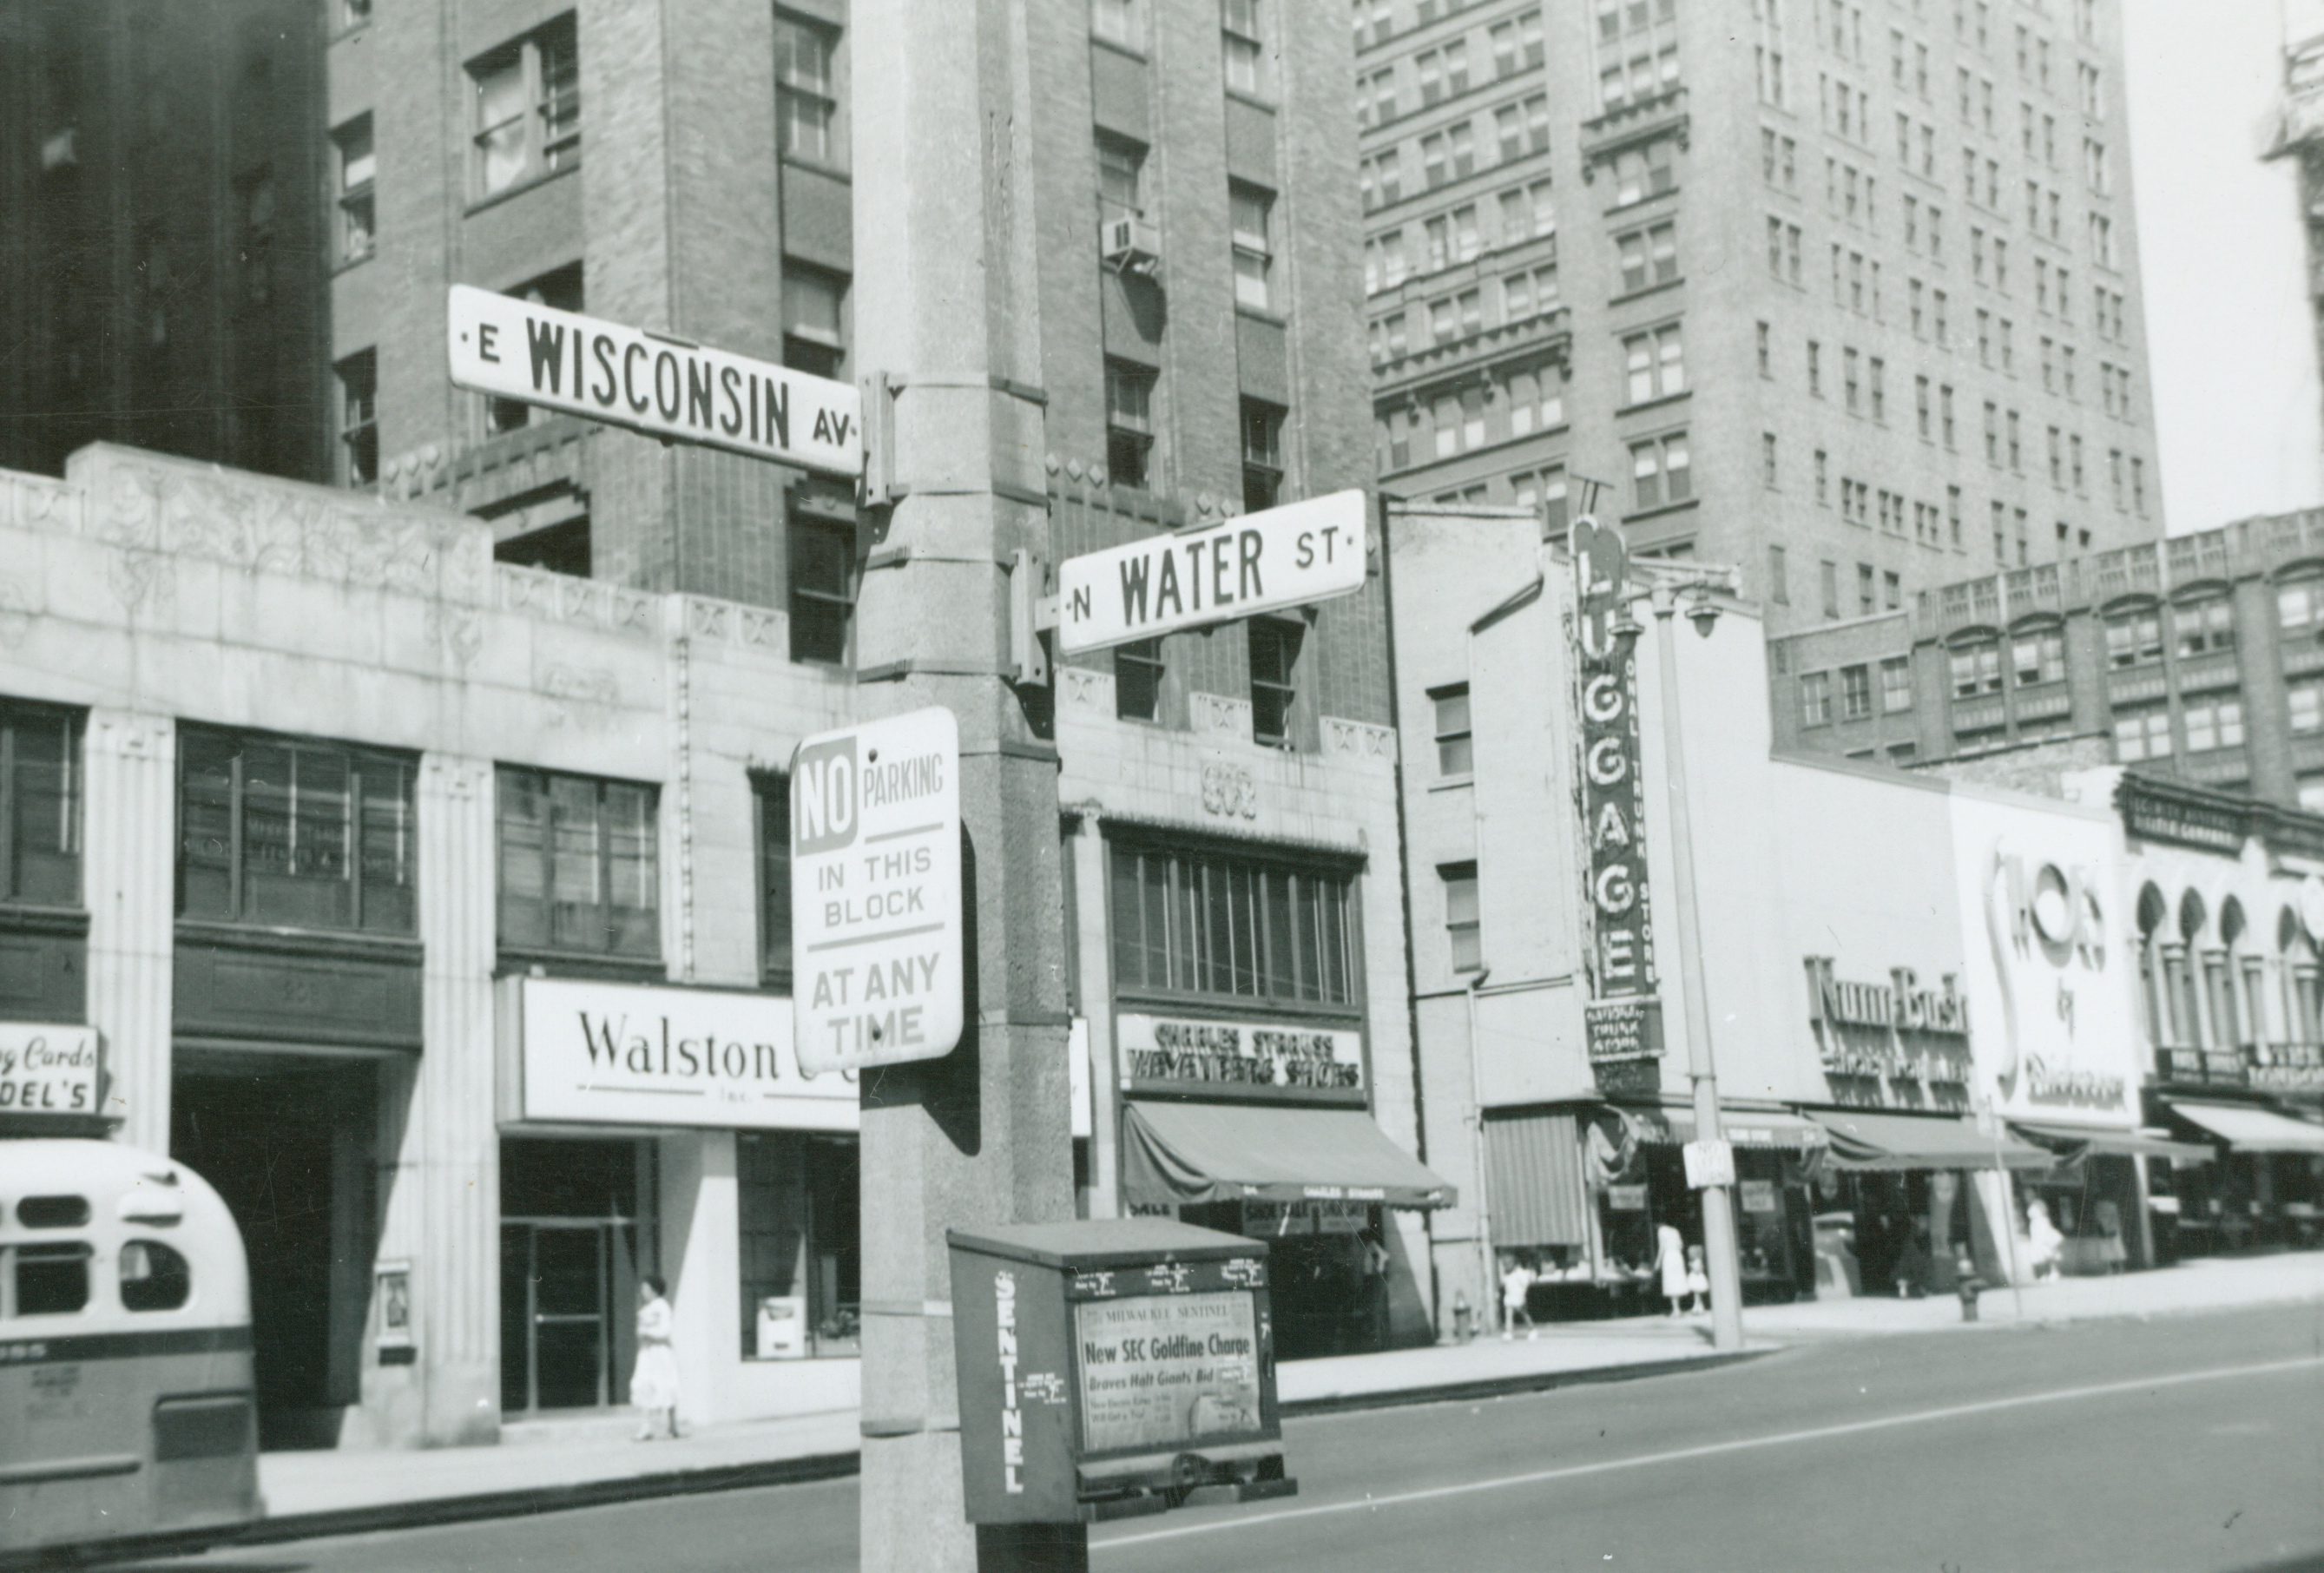 <table class=&quot;lightbox&quot;><tr><td colspan=2 class=&quot;lightbox-title&quot;>The Corner of Water and Wisconsin</td></tr><tr><td colspan=2 class=&quot;lightbox-caption&quot;>Street signs at the intersection Water and Wisconsin are shown in this 1958 photograph.</td></tr><tr><td colspan=2 class=&quot;lightbox-spacer&quot;></td></tr><tr class=&quot;lightbox-detail&quot;><td class=&quot;cell-title&quot;>Source: </td><td class=&quot;cell-value&quot;>From the Historic Photo Collection of the Milwaukee Public Library. Reprinted with permission. <br /><a href=&quot;http://content.mpl.org/cdm/singleitem/collection/HstoricPho/id/570/rec/1&quot; target=&quot;_blank&quot;>Milwaukee Public Library</a></td></tr><tr class=&quot;filler-row&quot;><td colspan=2>&nbsp;</td></tr></table>